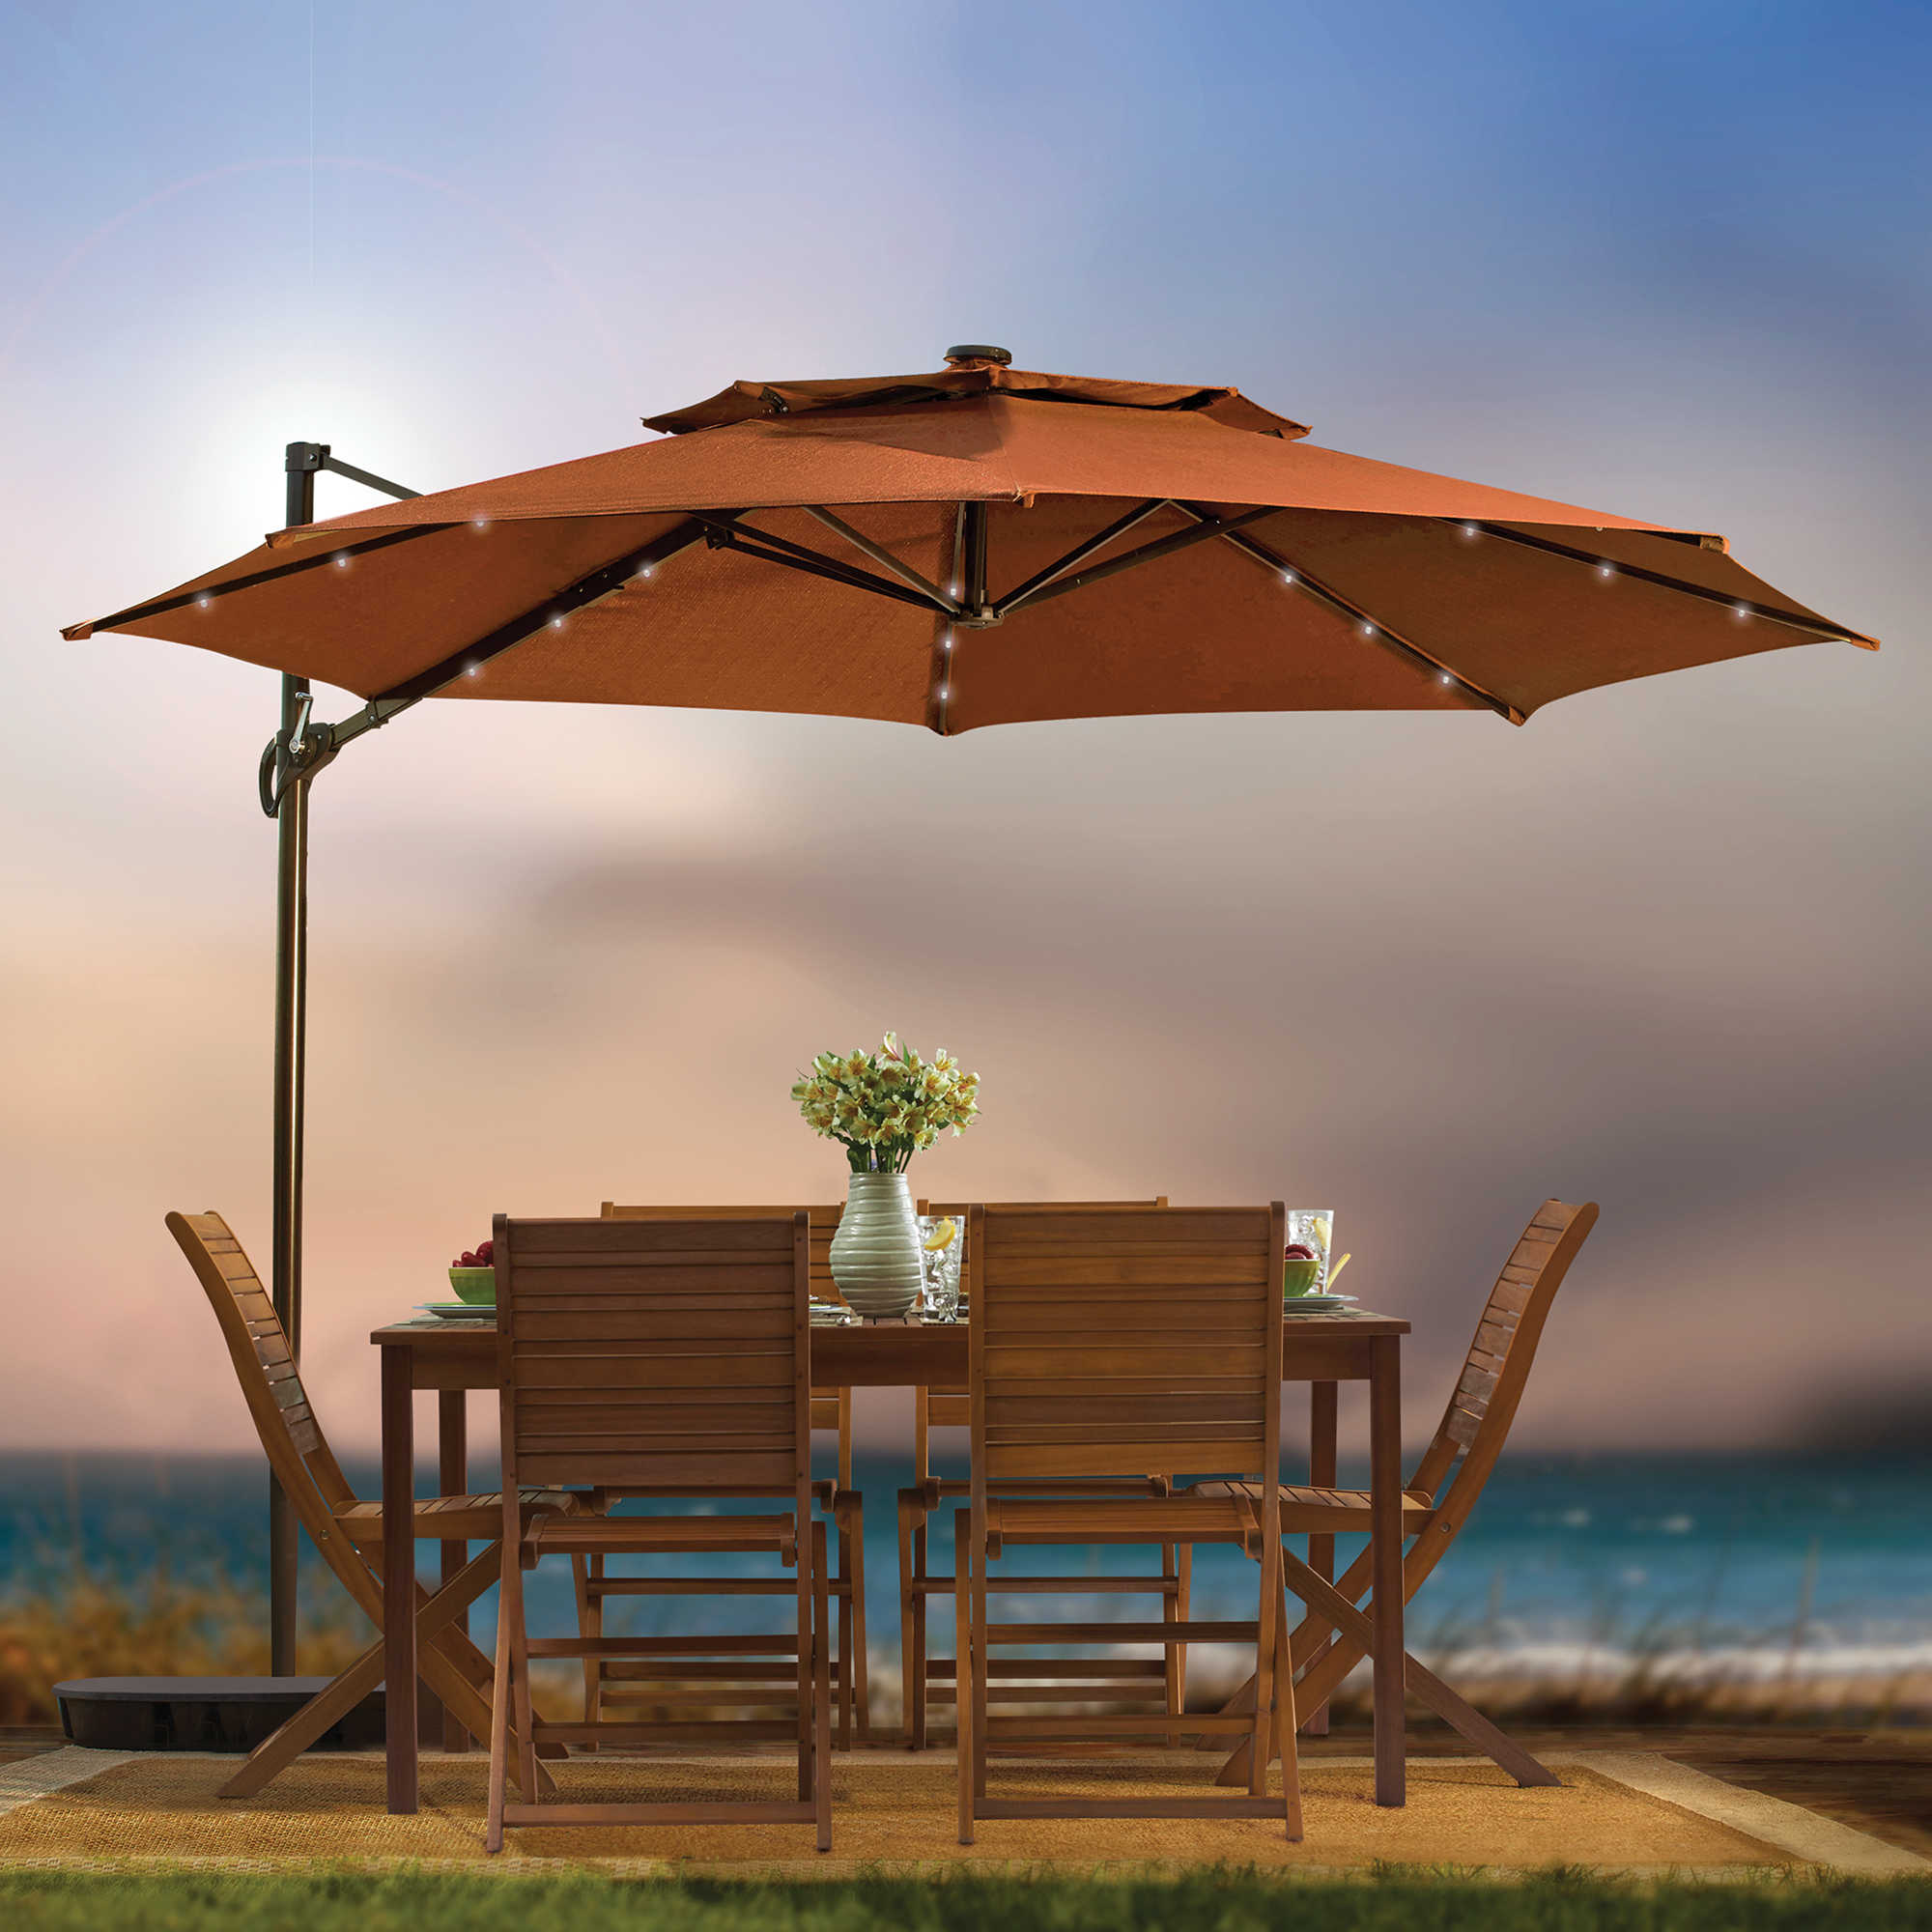 charming orange Cantilever Patio Umbrella with wooden dining table set for patio decor ideas